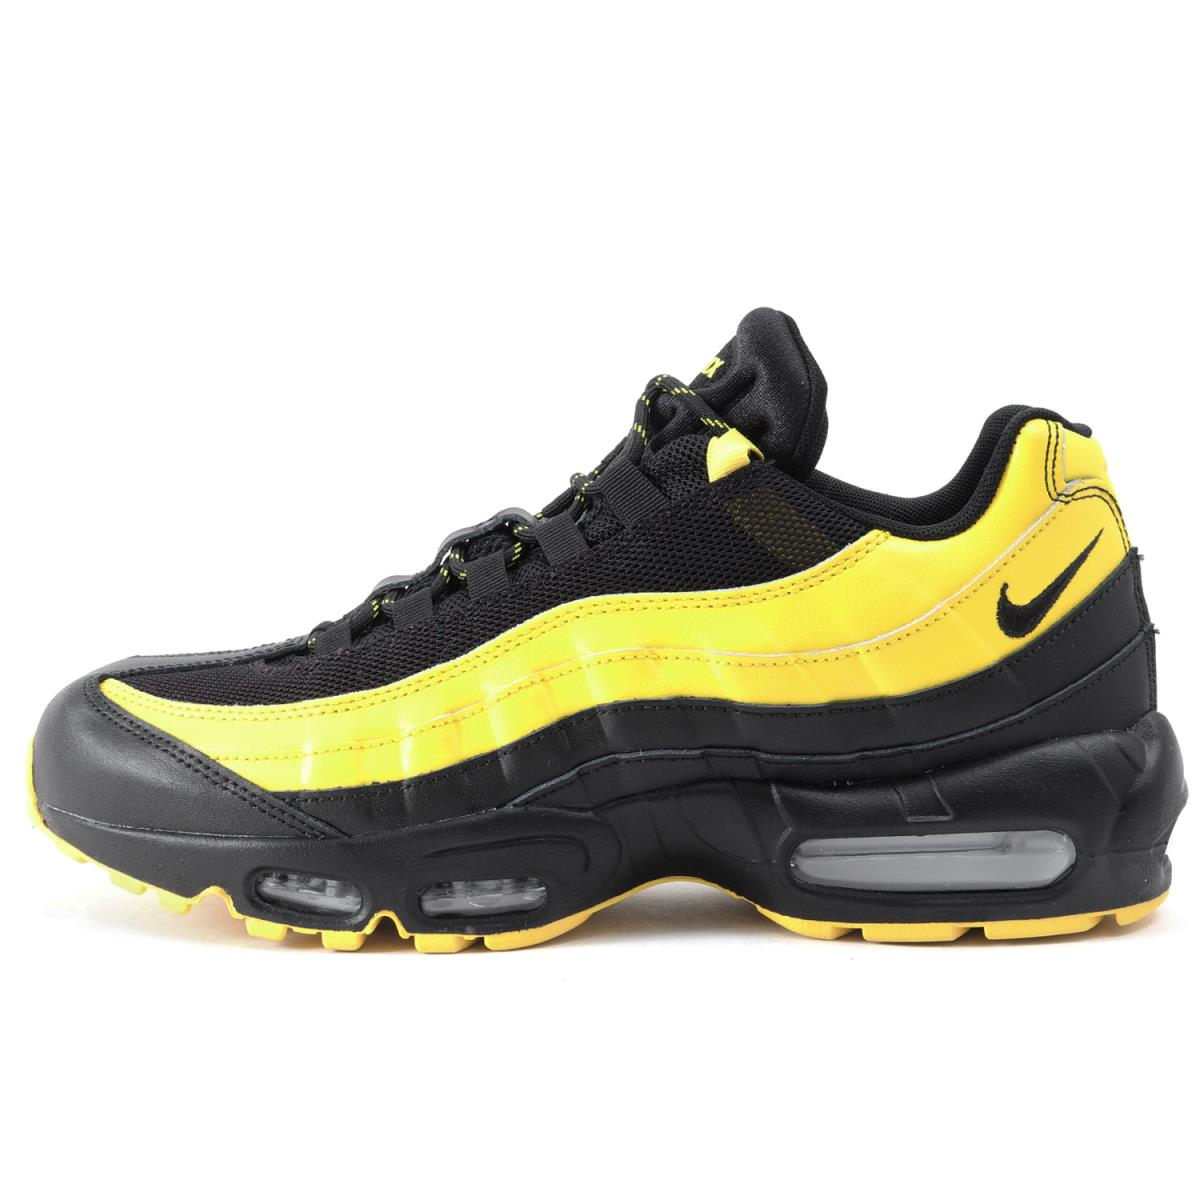 online shop pre order online here NIKE (Nike) FOOT LOCKER comment AIR MAX 95 FREQUENCY PACK(AV7939-001) black  X yellow US9(27cm)